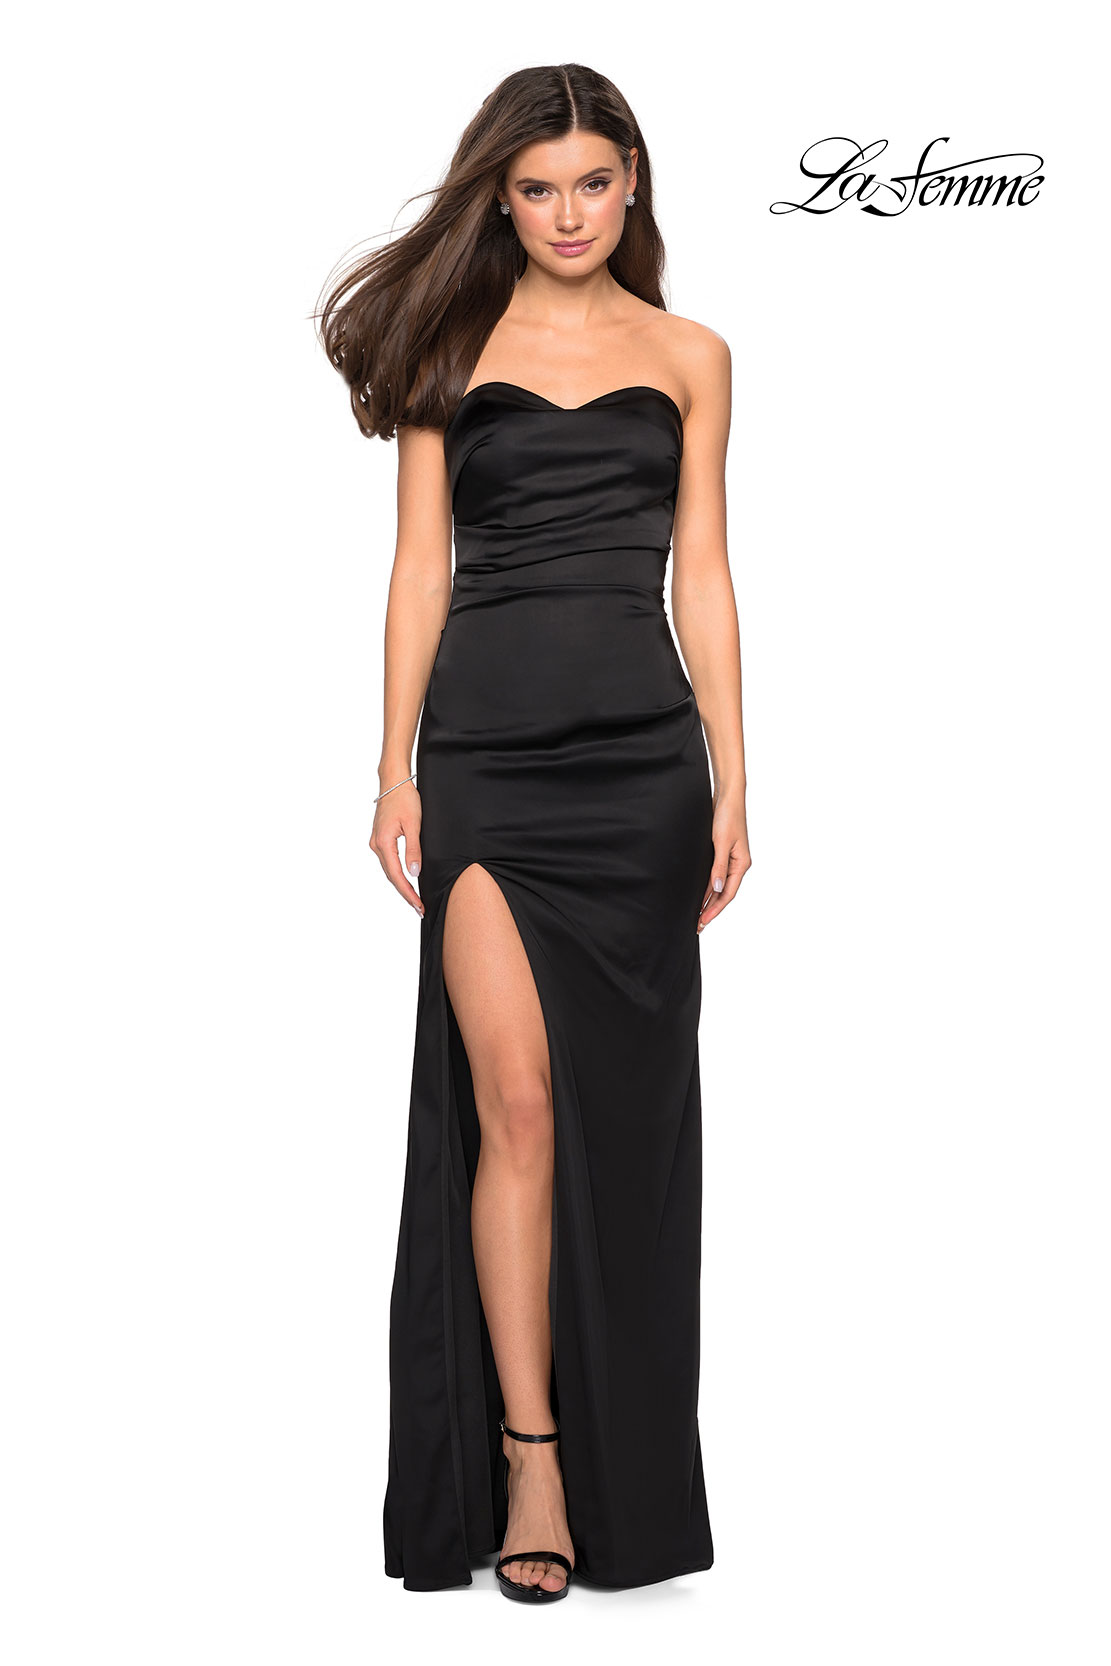 d831bb1900 Picture of  Strapless Form Fitting Satin Dress with Side Leg Slit